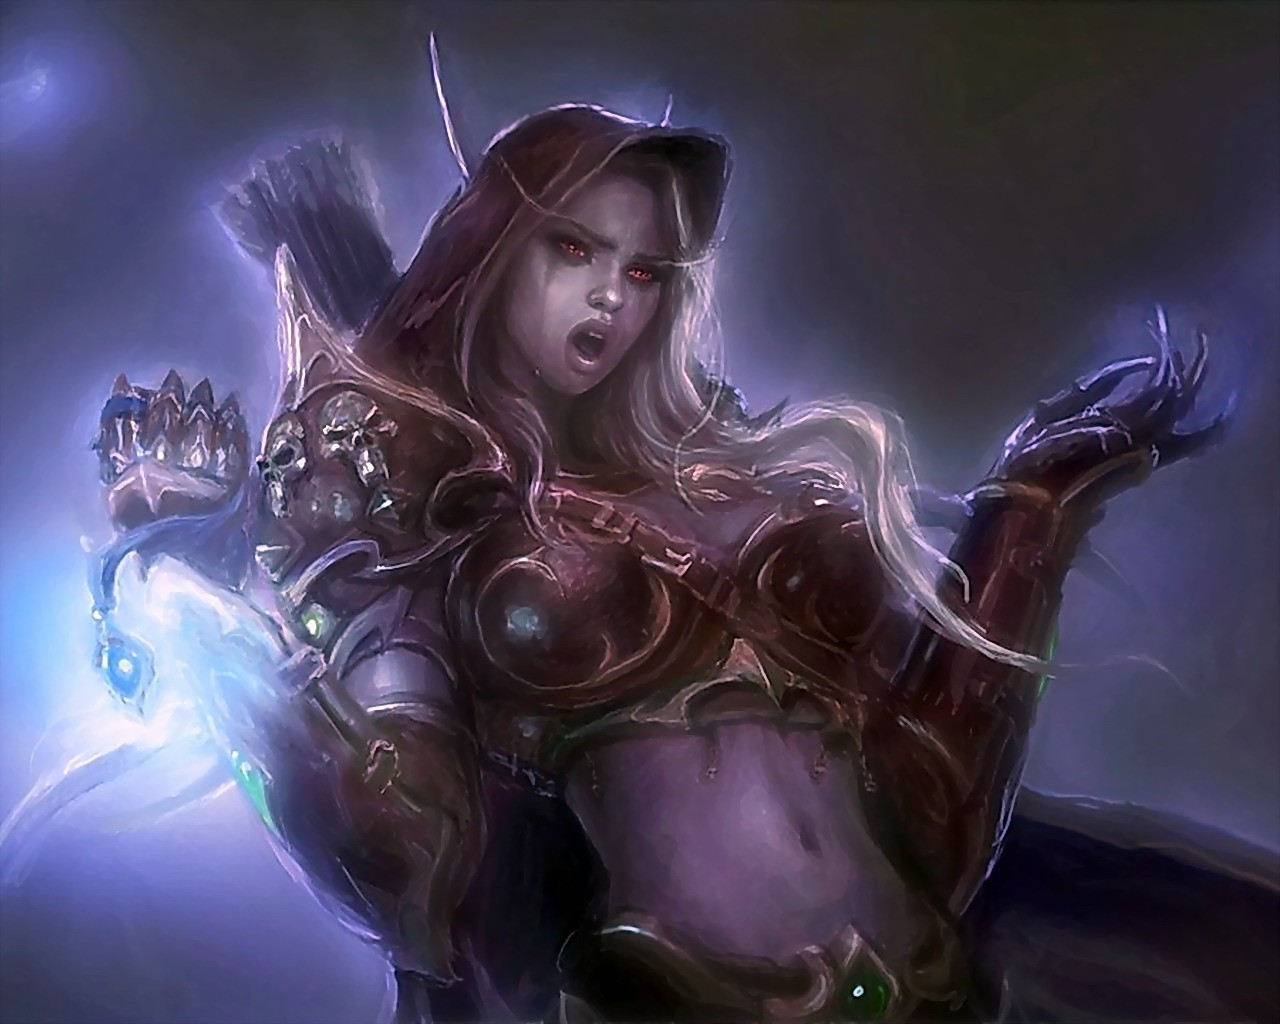 world of warcraft cgi HD Wallpaper